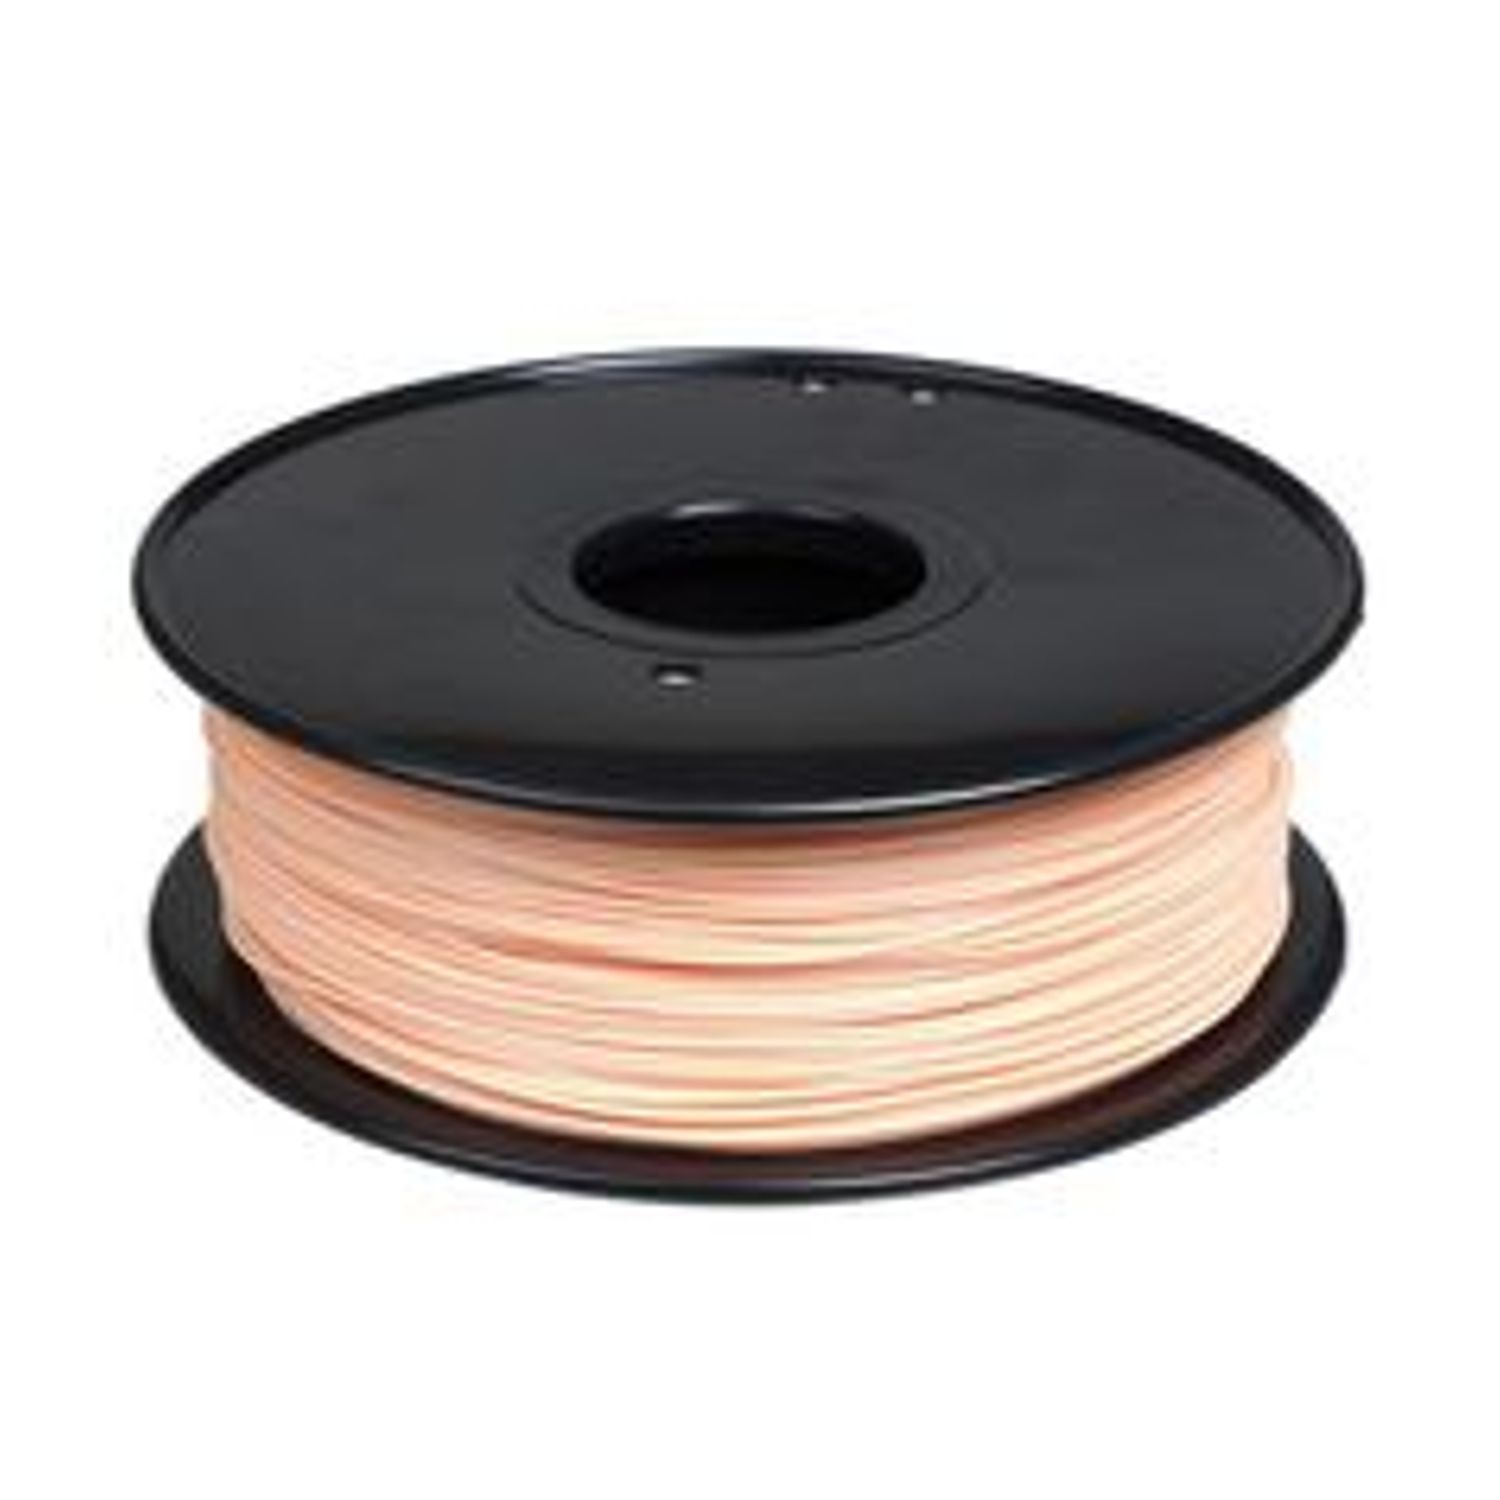 Insten 3D Filament Printer ABS 1.75mm 1kg spool - Baby Skin (Solid color) for 3D Printing (N3D-ABS-Skin)